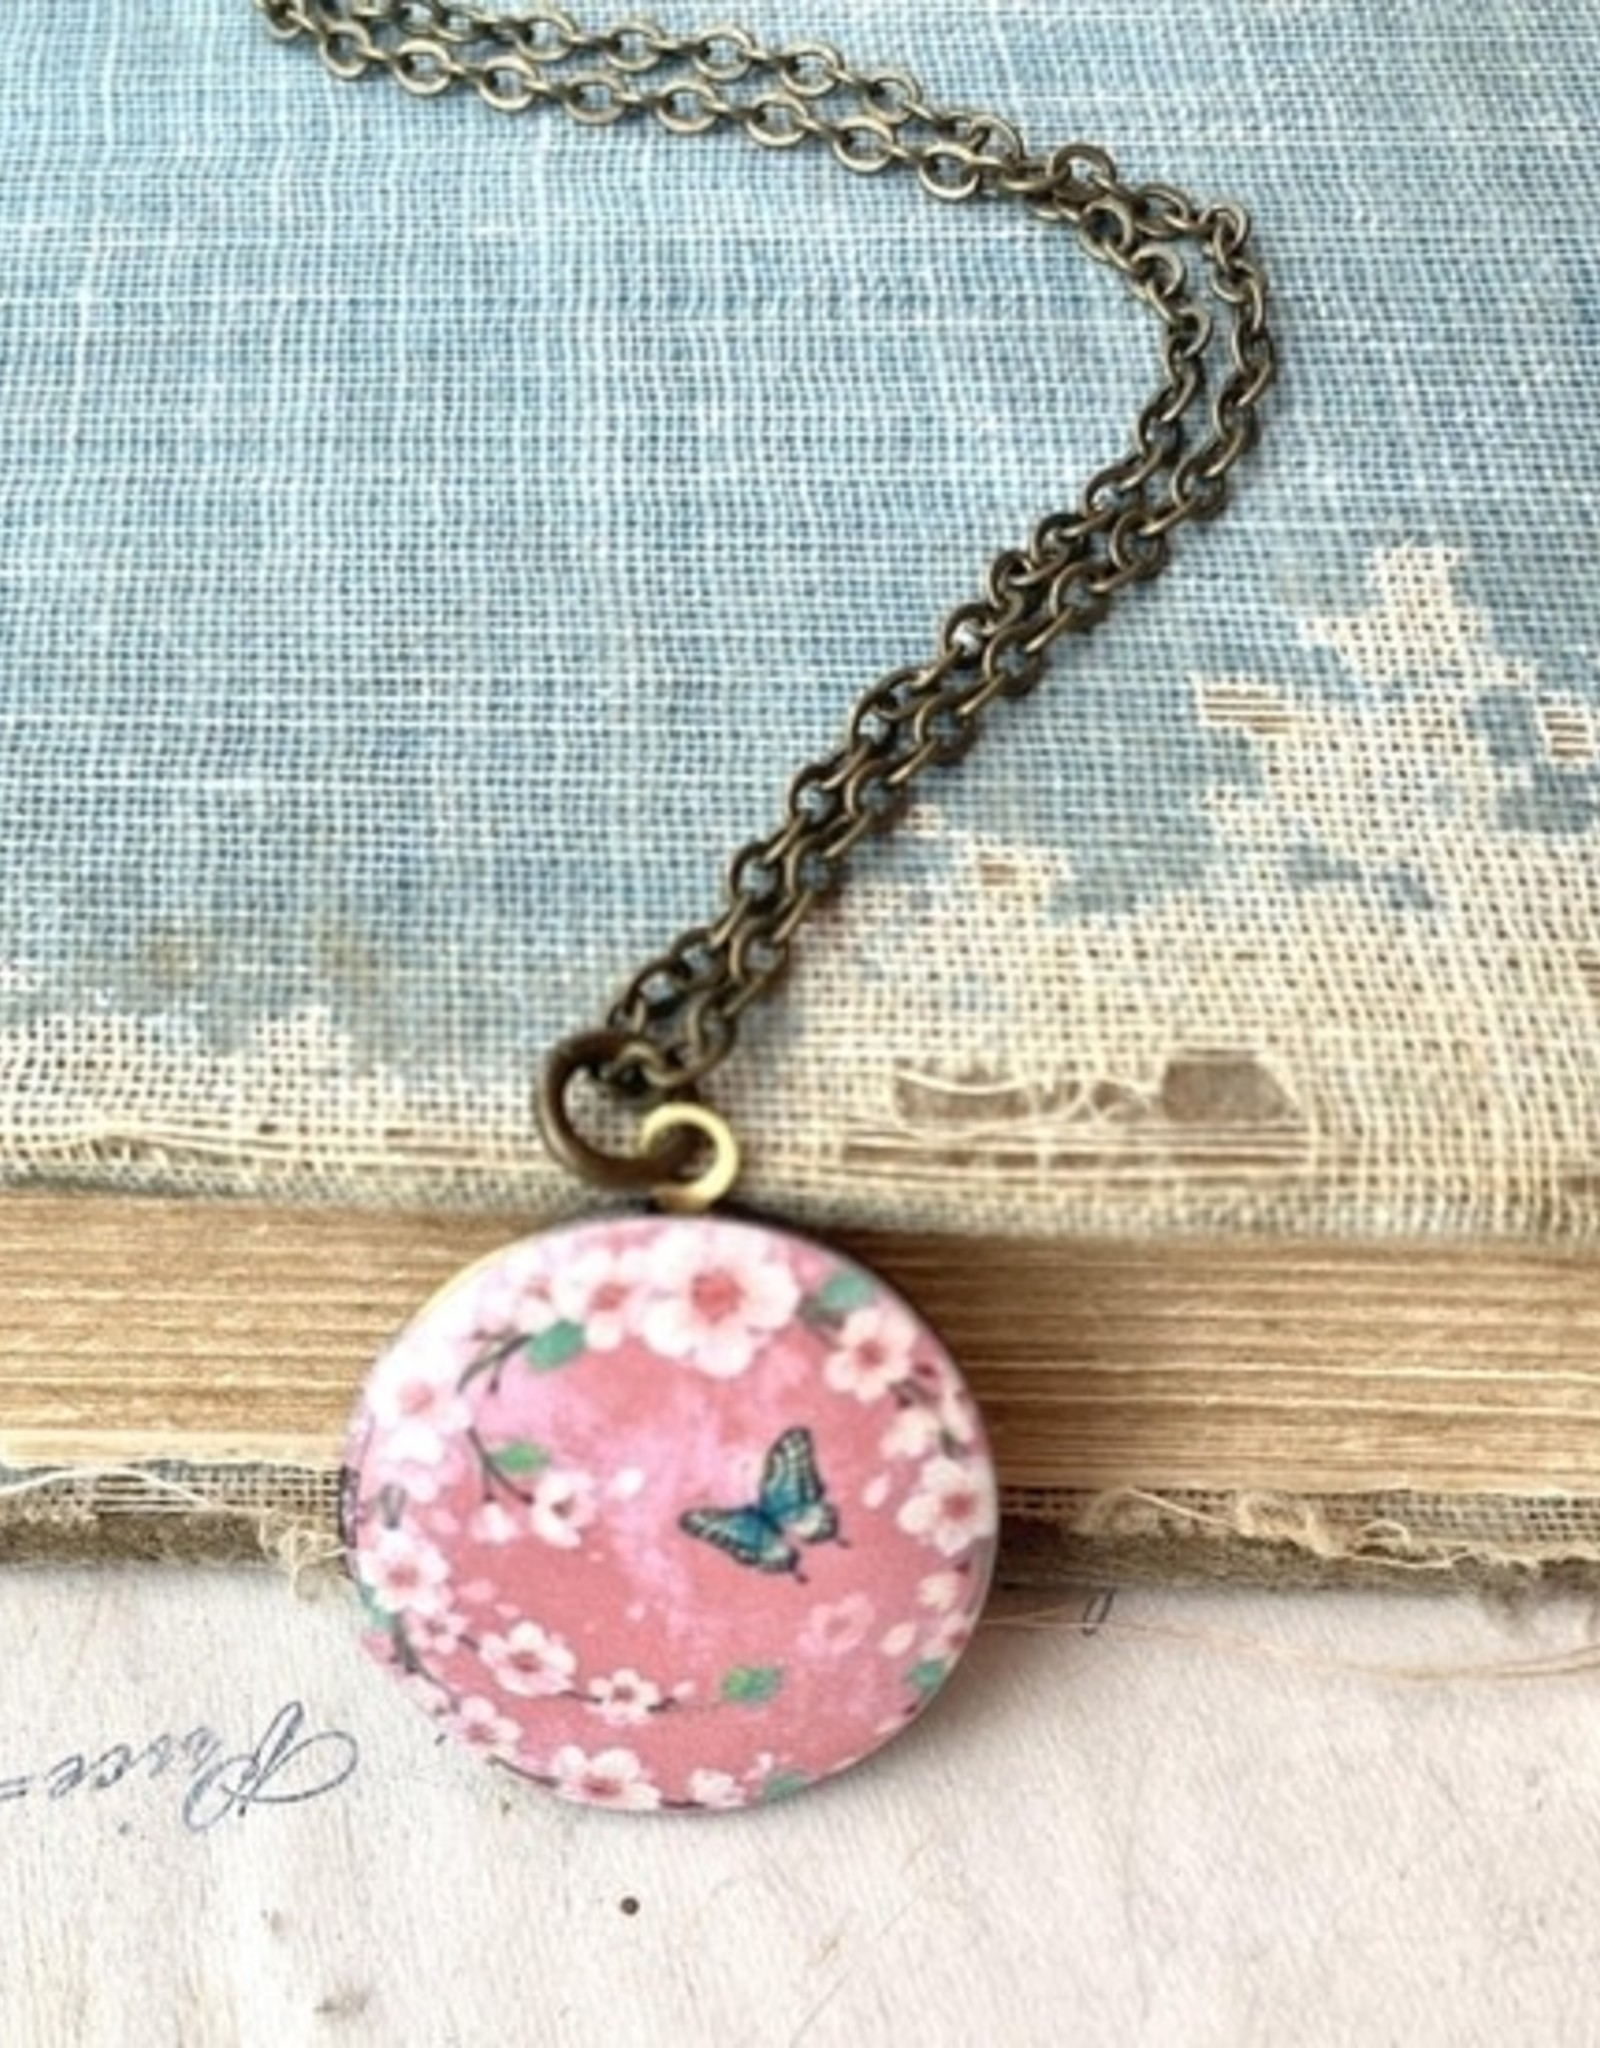 NECKLACE-LOCKET-PINK CHERRY BLOSSOM FLOWERS